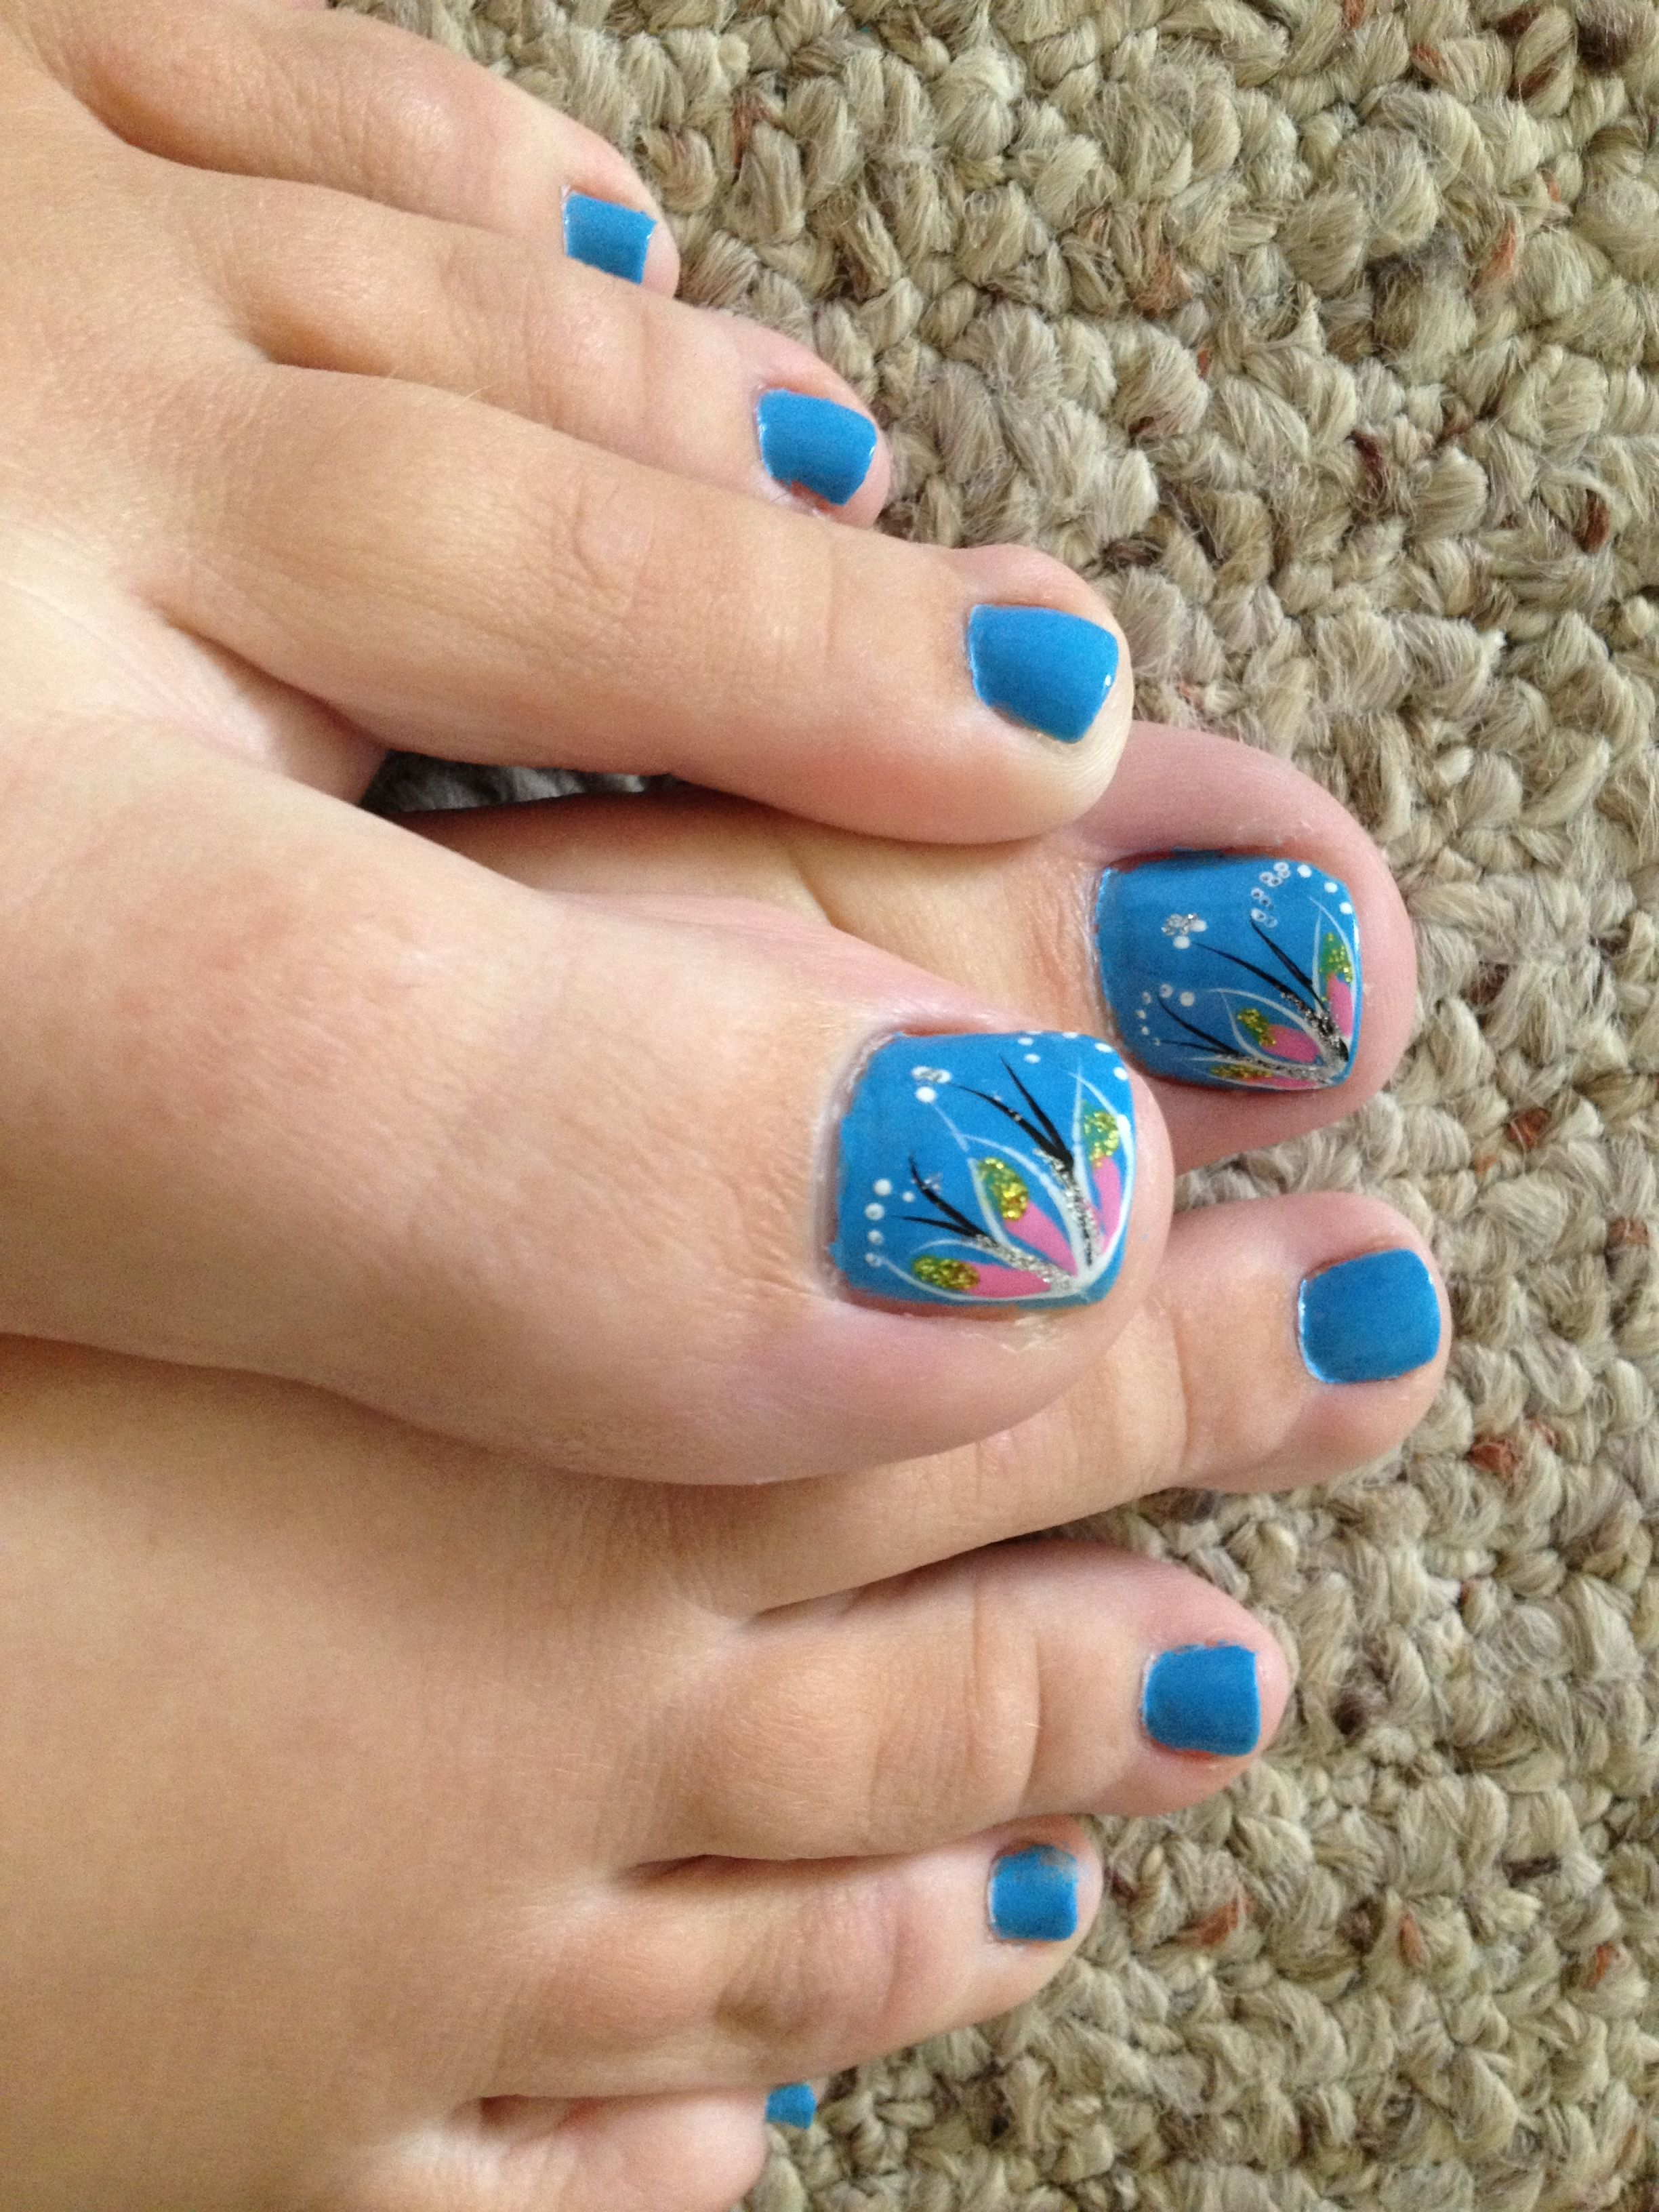 17 best images about uas pies on pinterest pedicures cute toenail designs and black toe